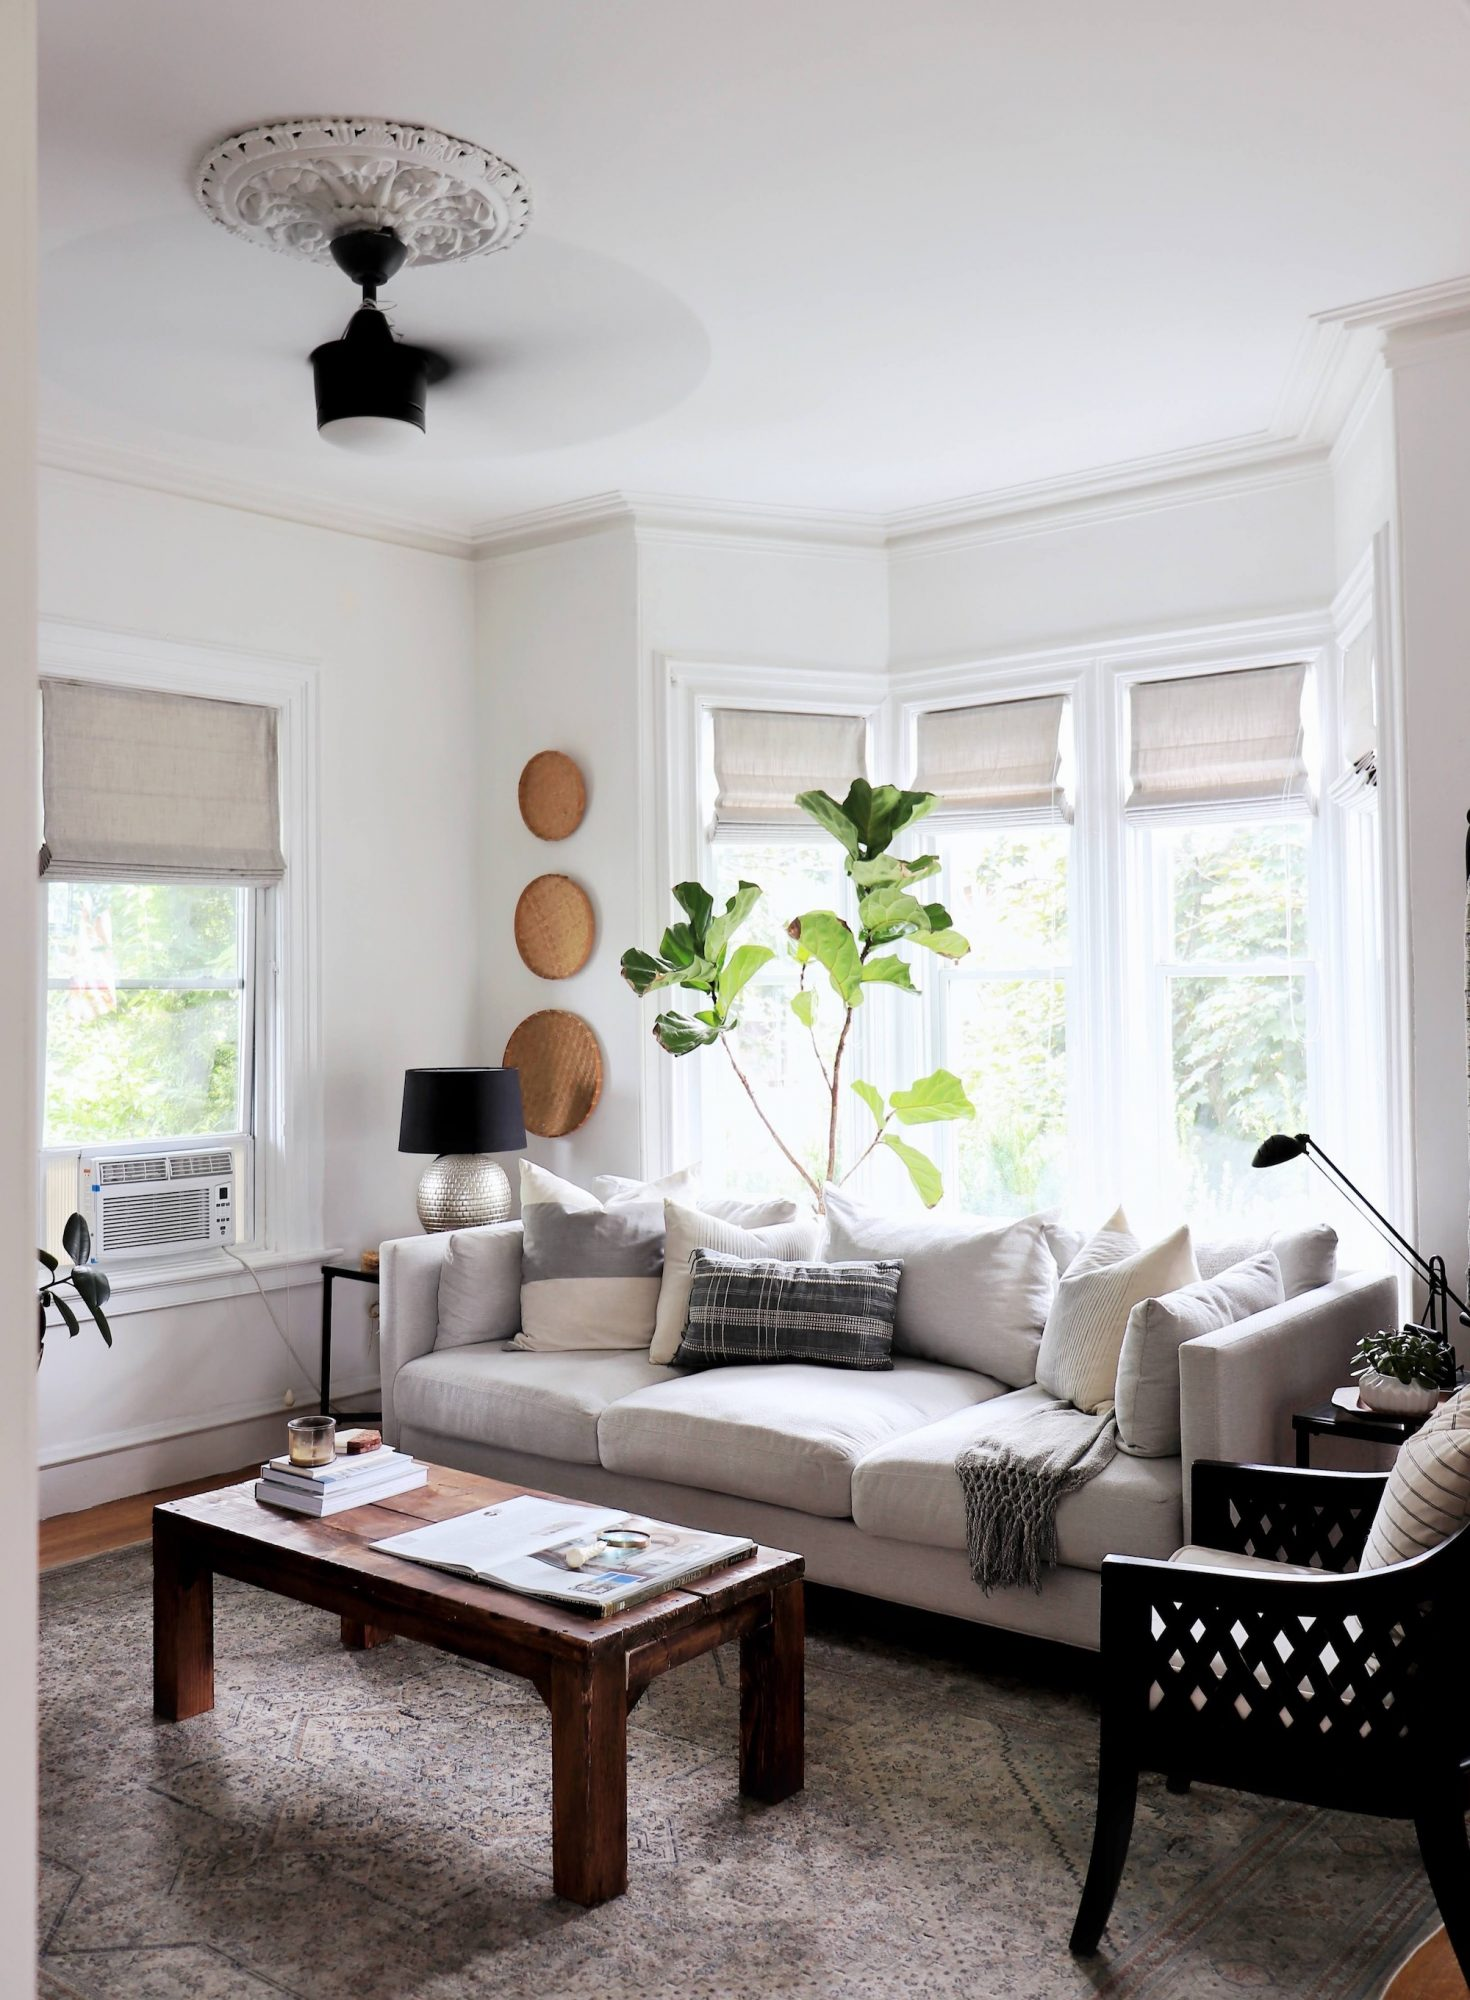 Living Room Decorating Ideas, Architecture, neutral room with ceiling medallion